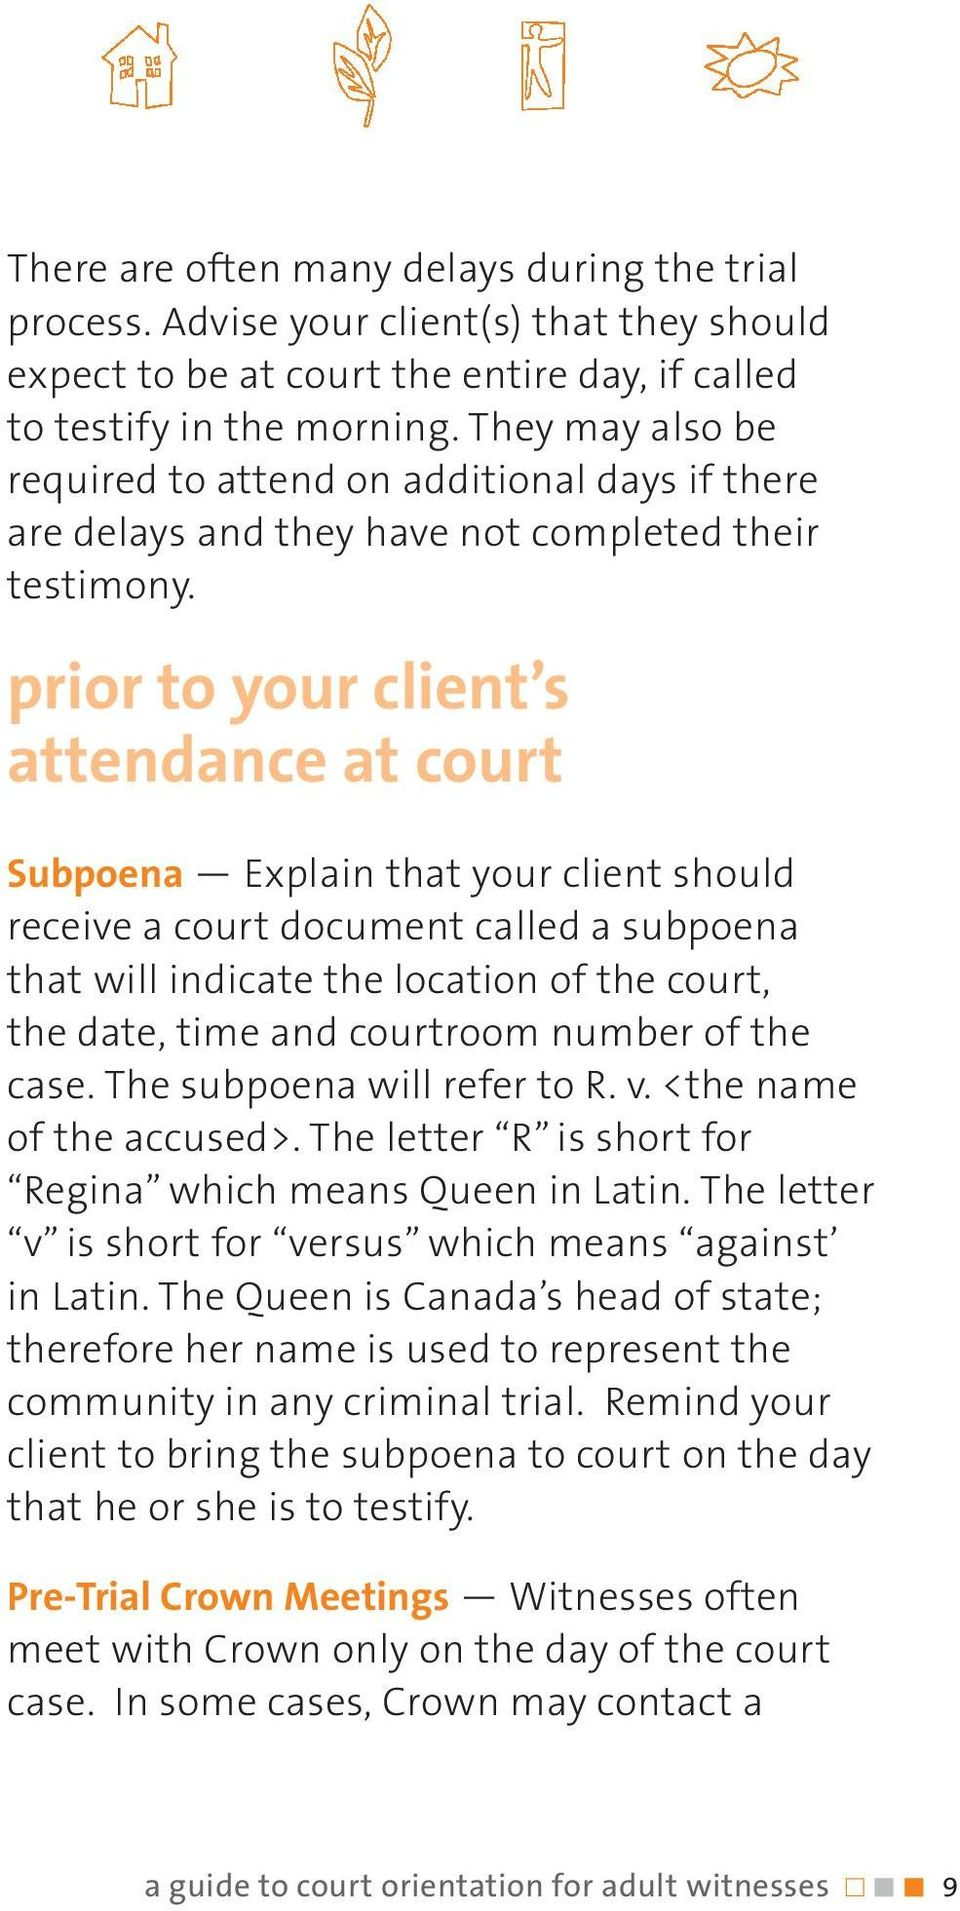 prior to your client s attendance at court Subpoena Explain that your client should receive a court document called a subpoena that will indicate the location of the court, the date, time and